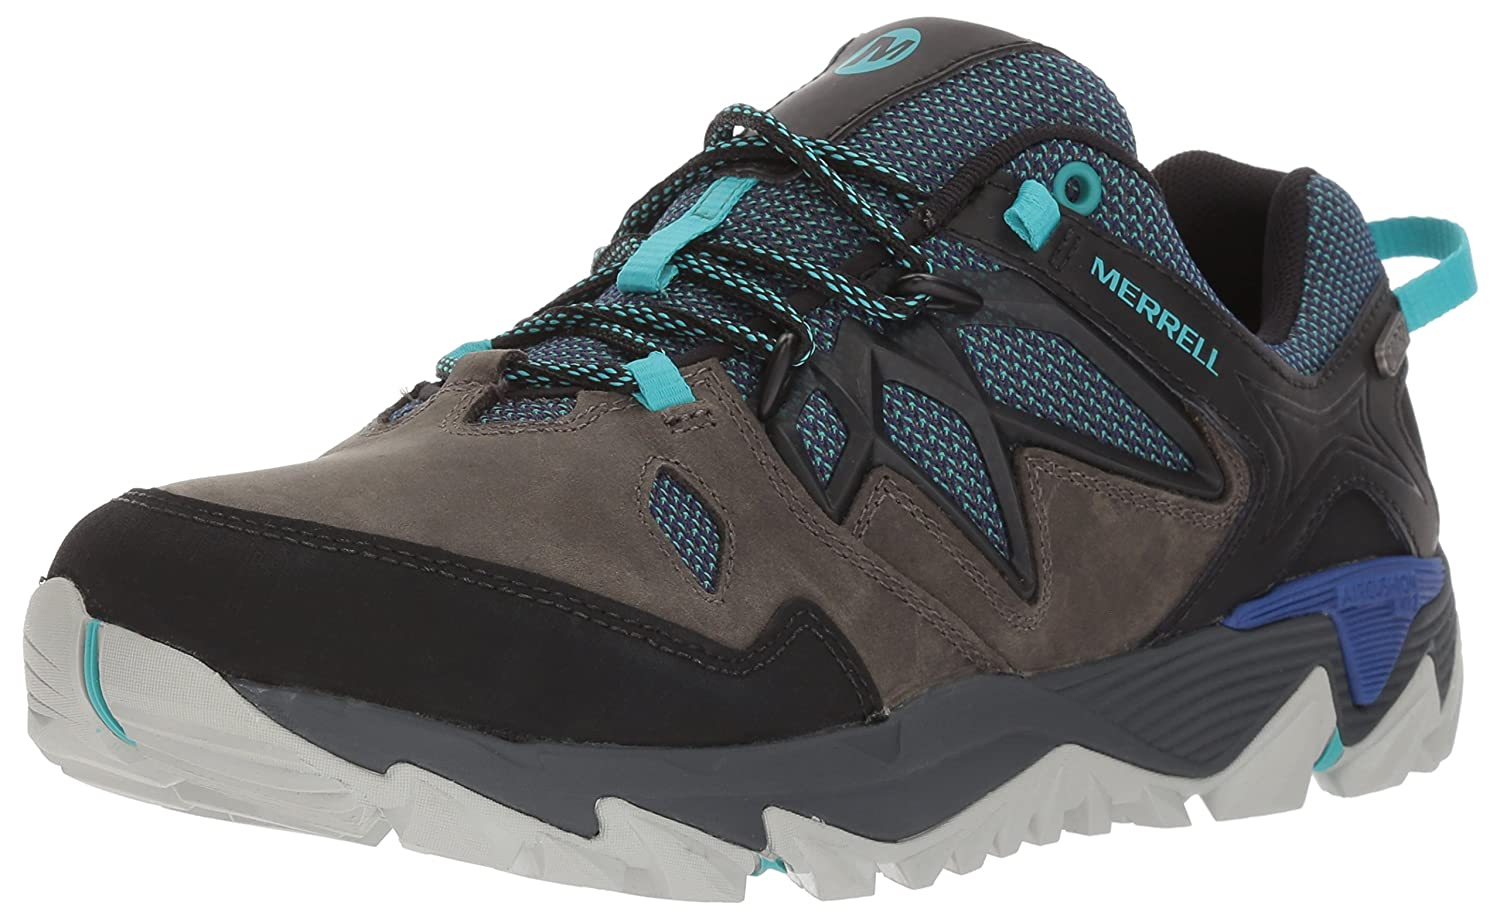 Merrell Women's All Out Blaze 2 Waterproof Hiking Shoe B01MU0I5KE 5 B(M) US|Pewter/Mazarine Blue